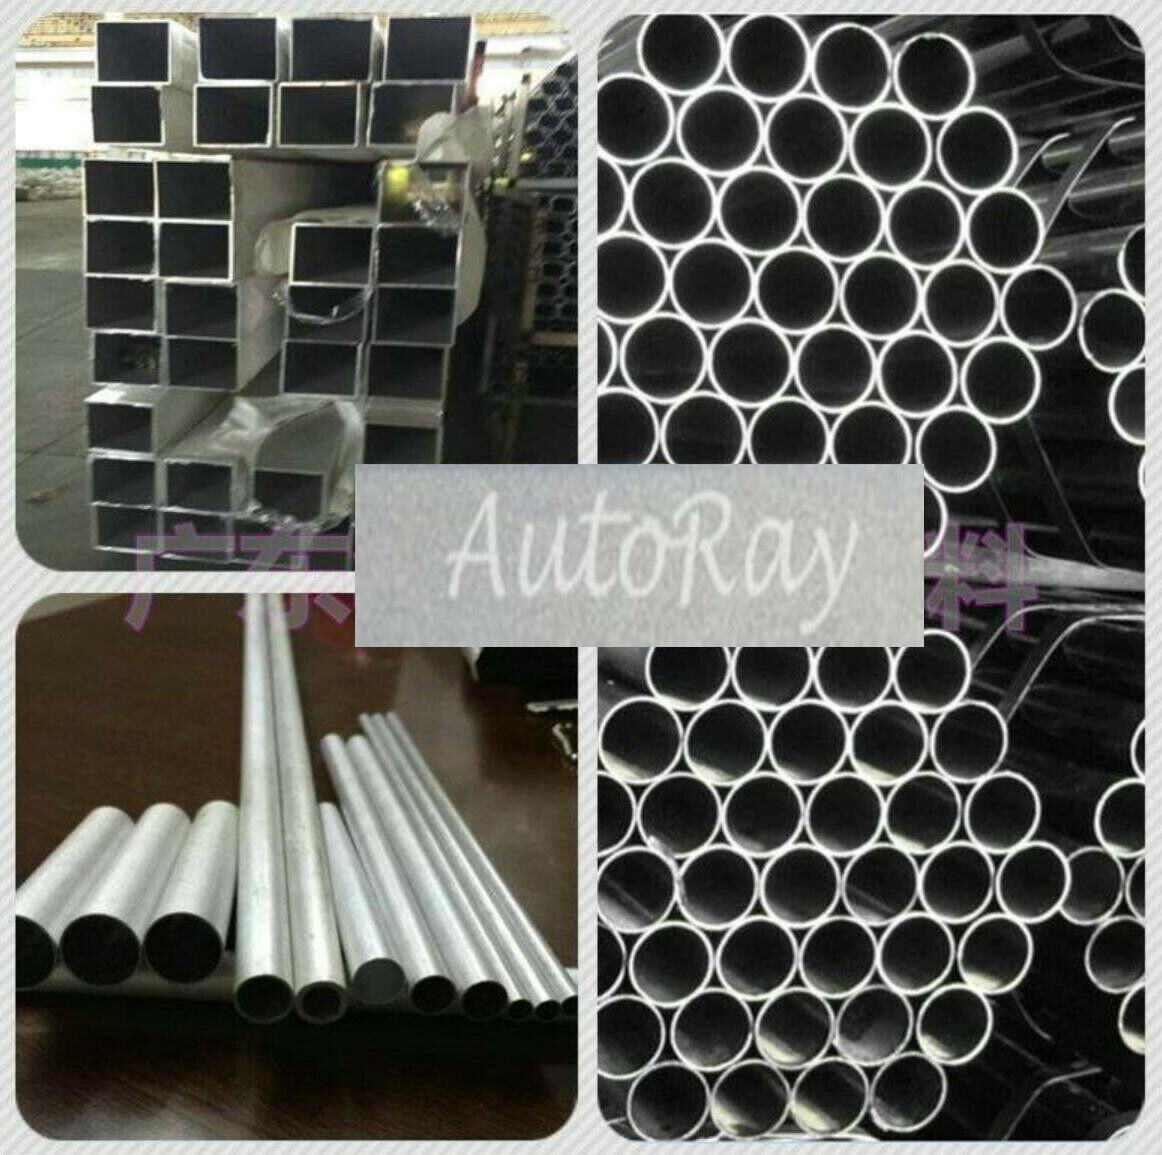 "6061 ALUMINUM TUBE PIPE ROUND 12/"" Total Length x 0.0787/"" Wall Thick// 40*36x300MM"